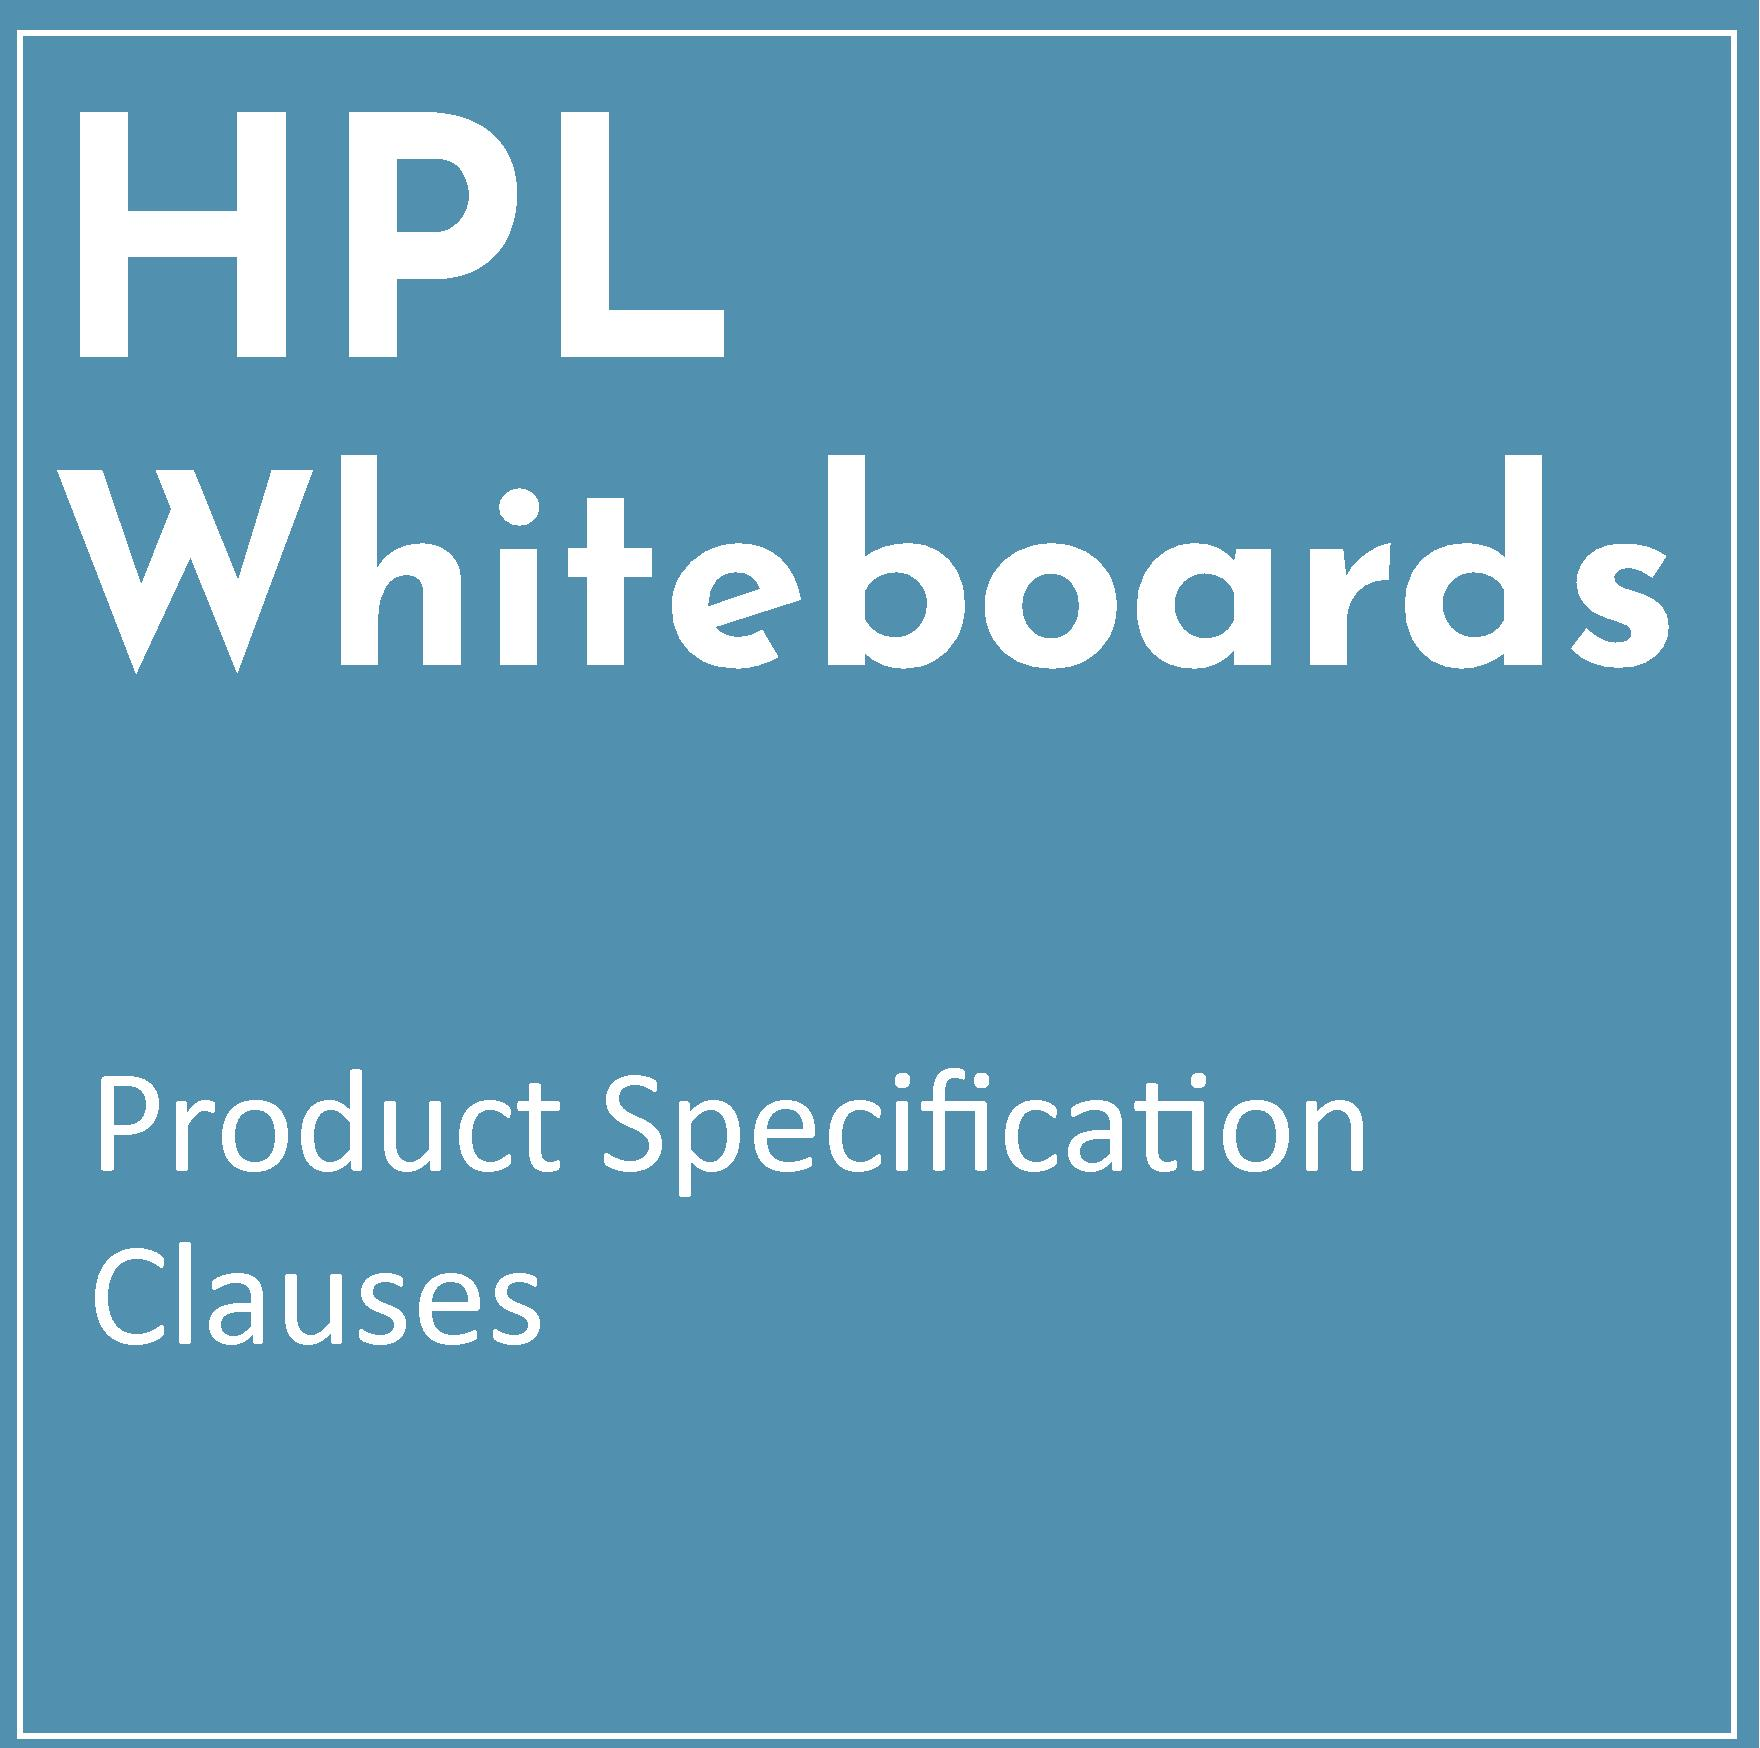 Product Specification Clause – HPL Whiteboard